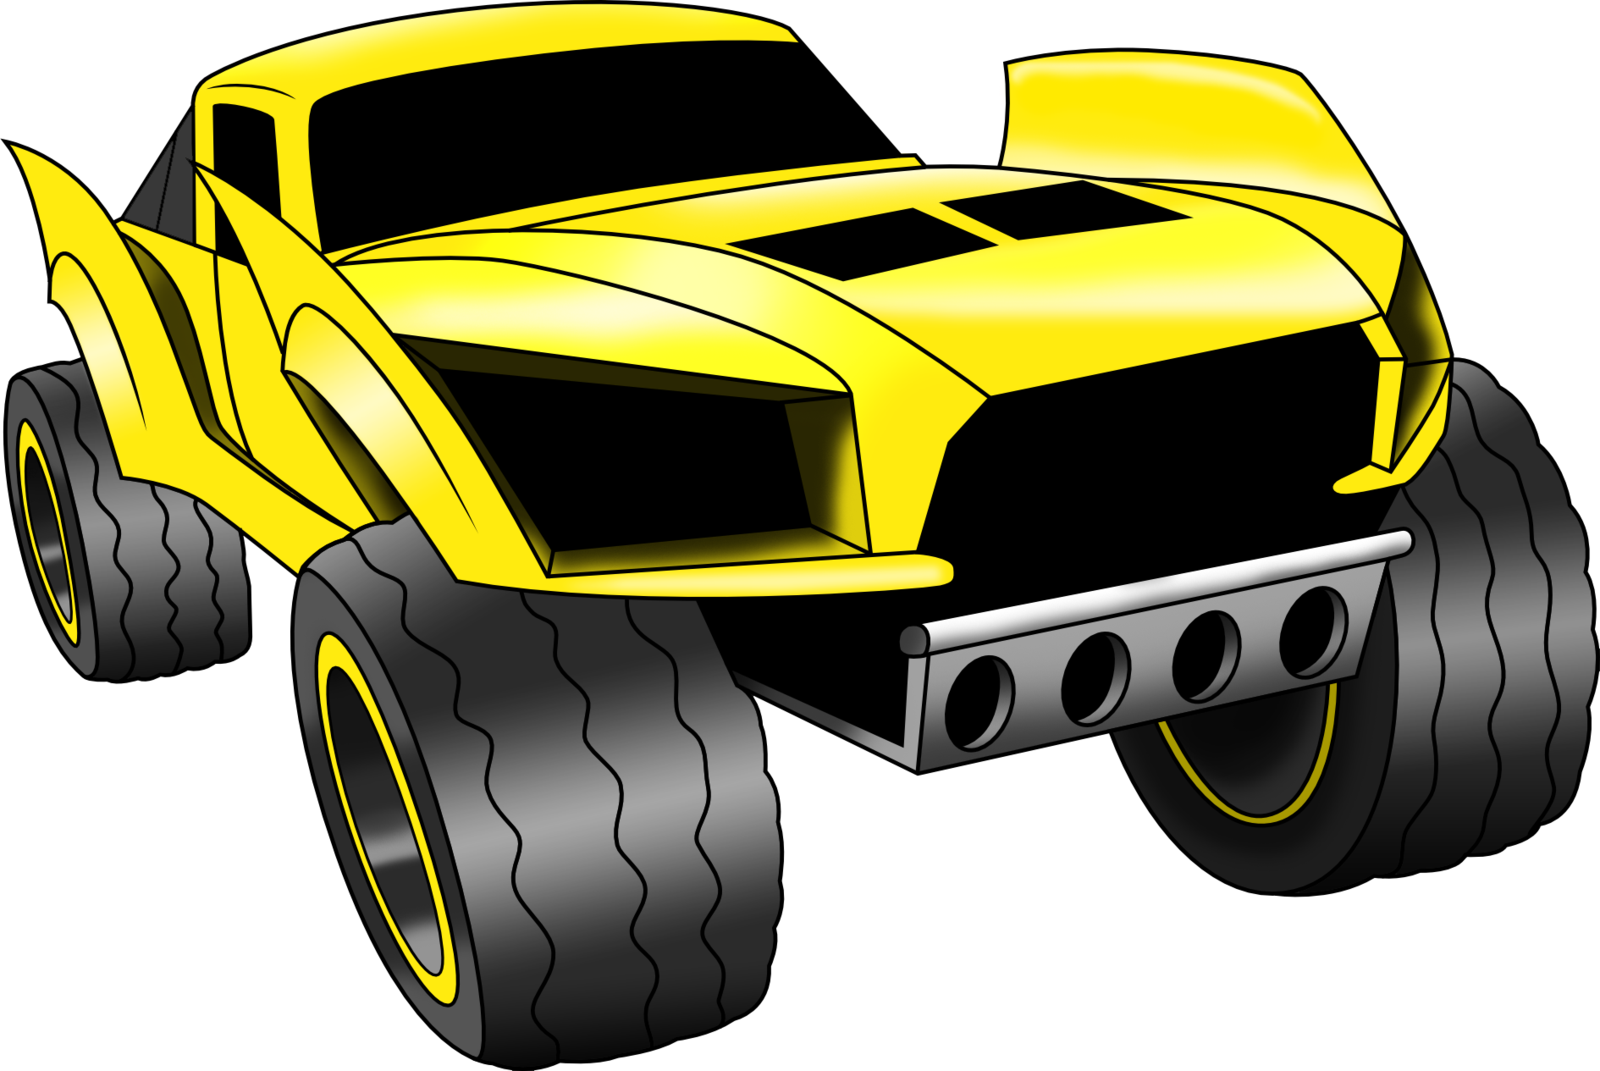 1600x1071 Hot Wheels Baja Truck (Vectored And Shaded) By Artthriller94 On